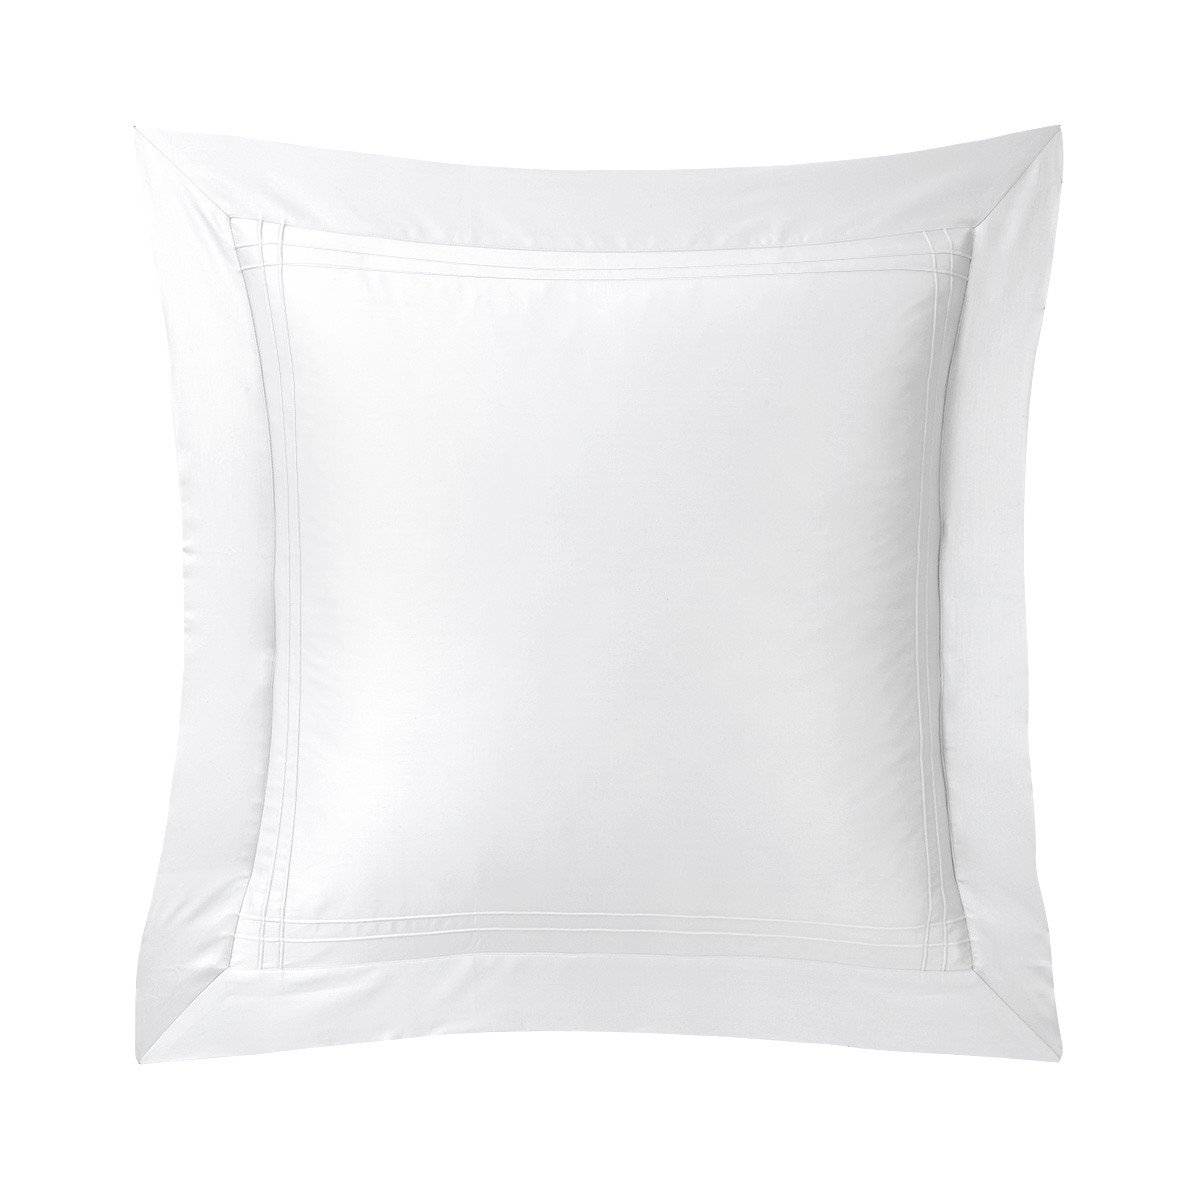 Adagio Blanc Bedding Collection by Yves Delorme | Fig Linens - white, cotton, luxury euro sham